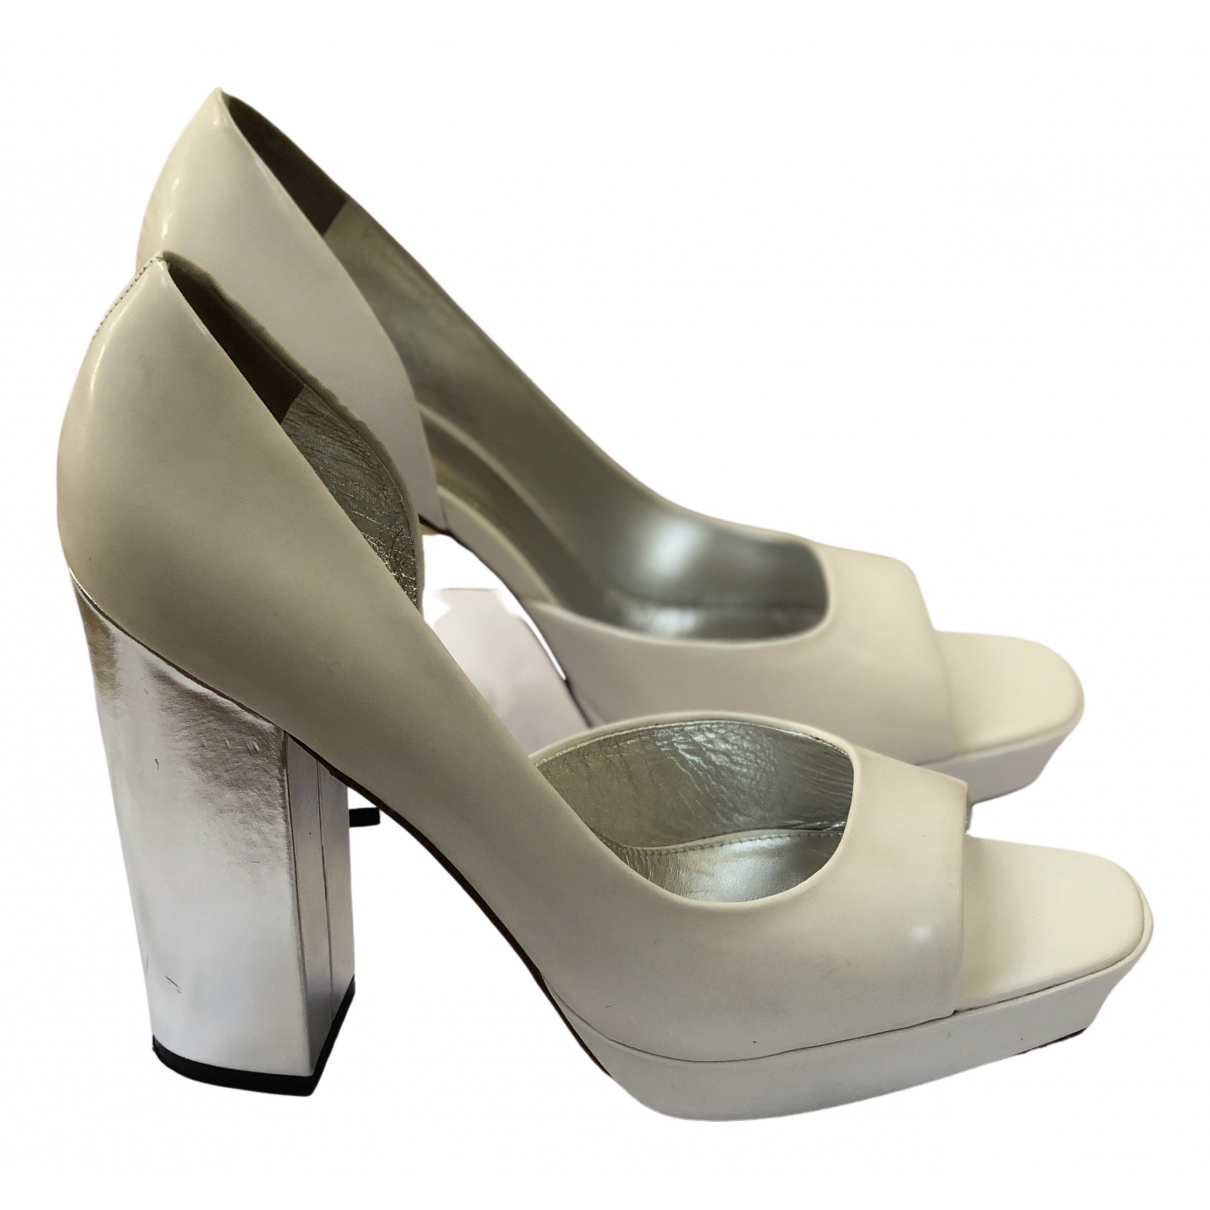 Versus \N White Patent leather Heels for Women 38 EU